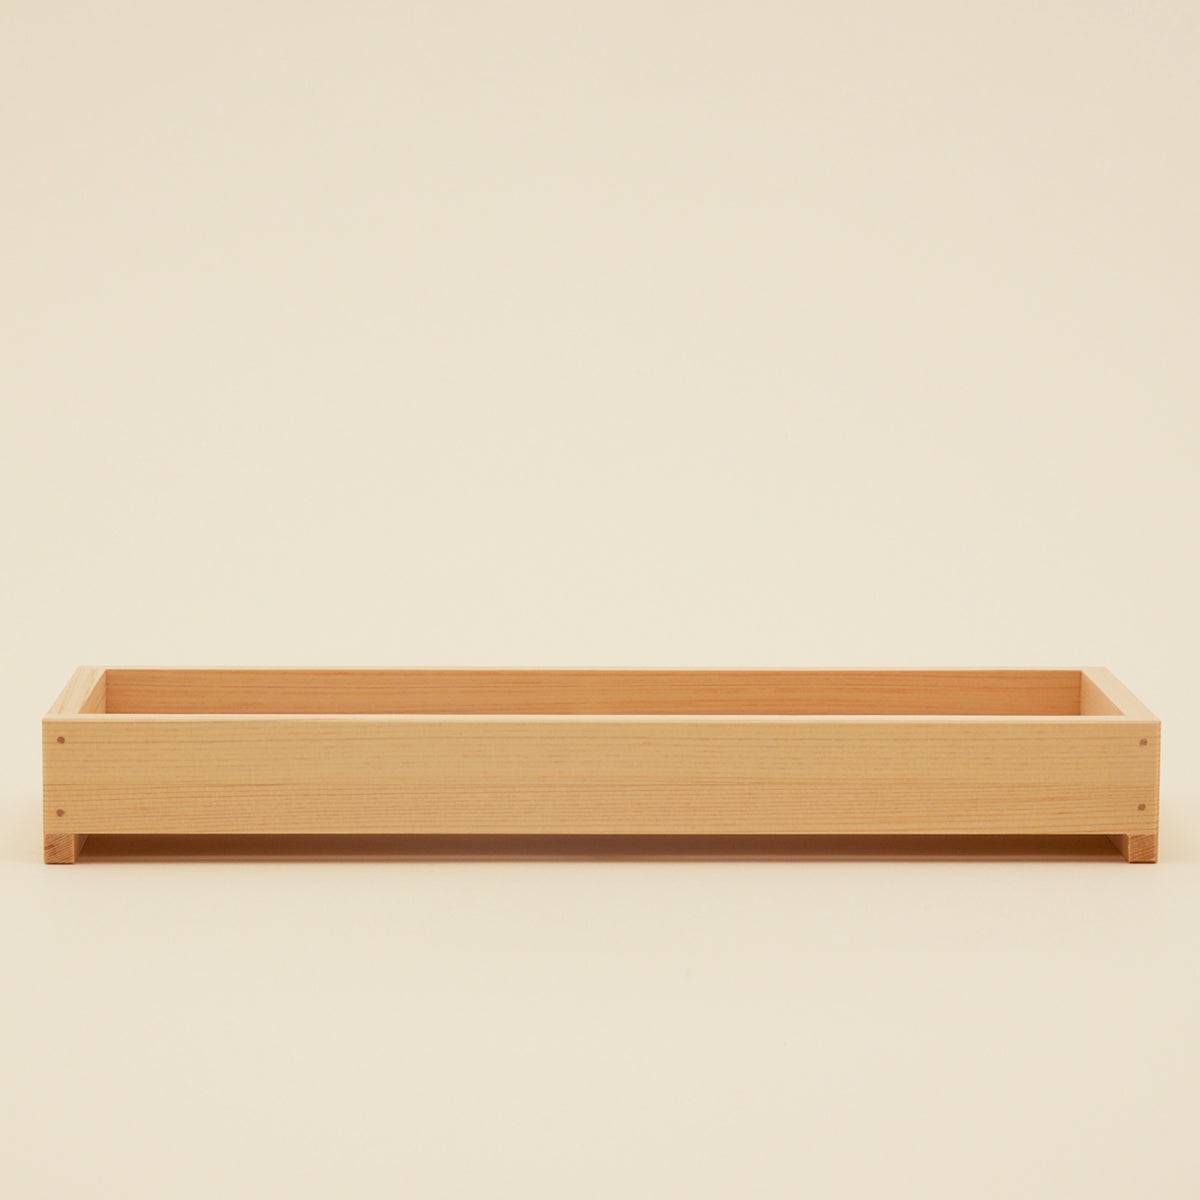 Hinoki Soap Tray